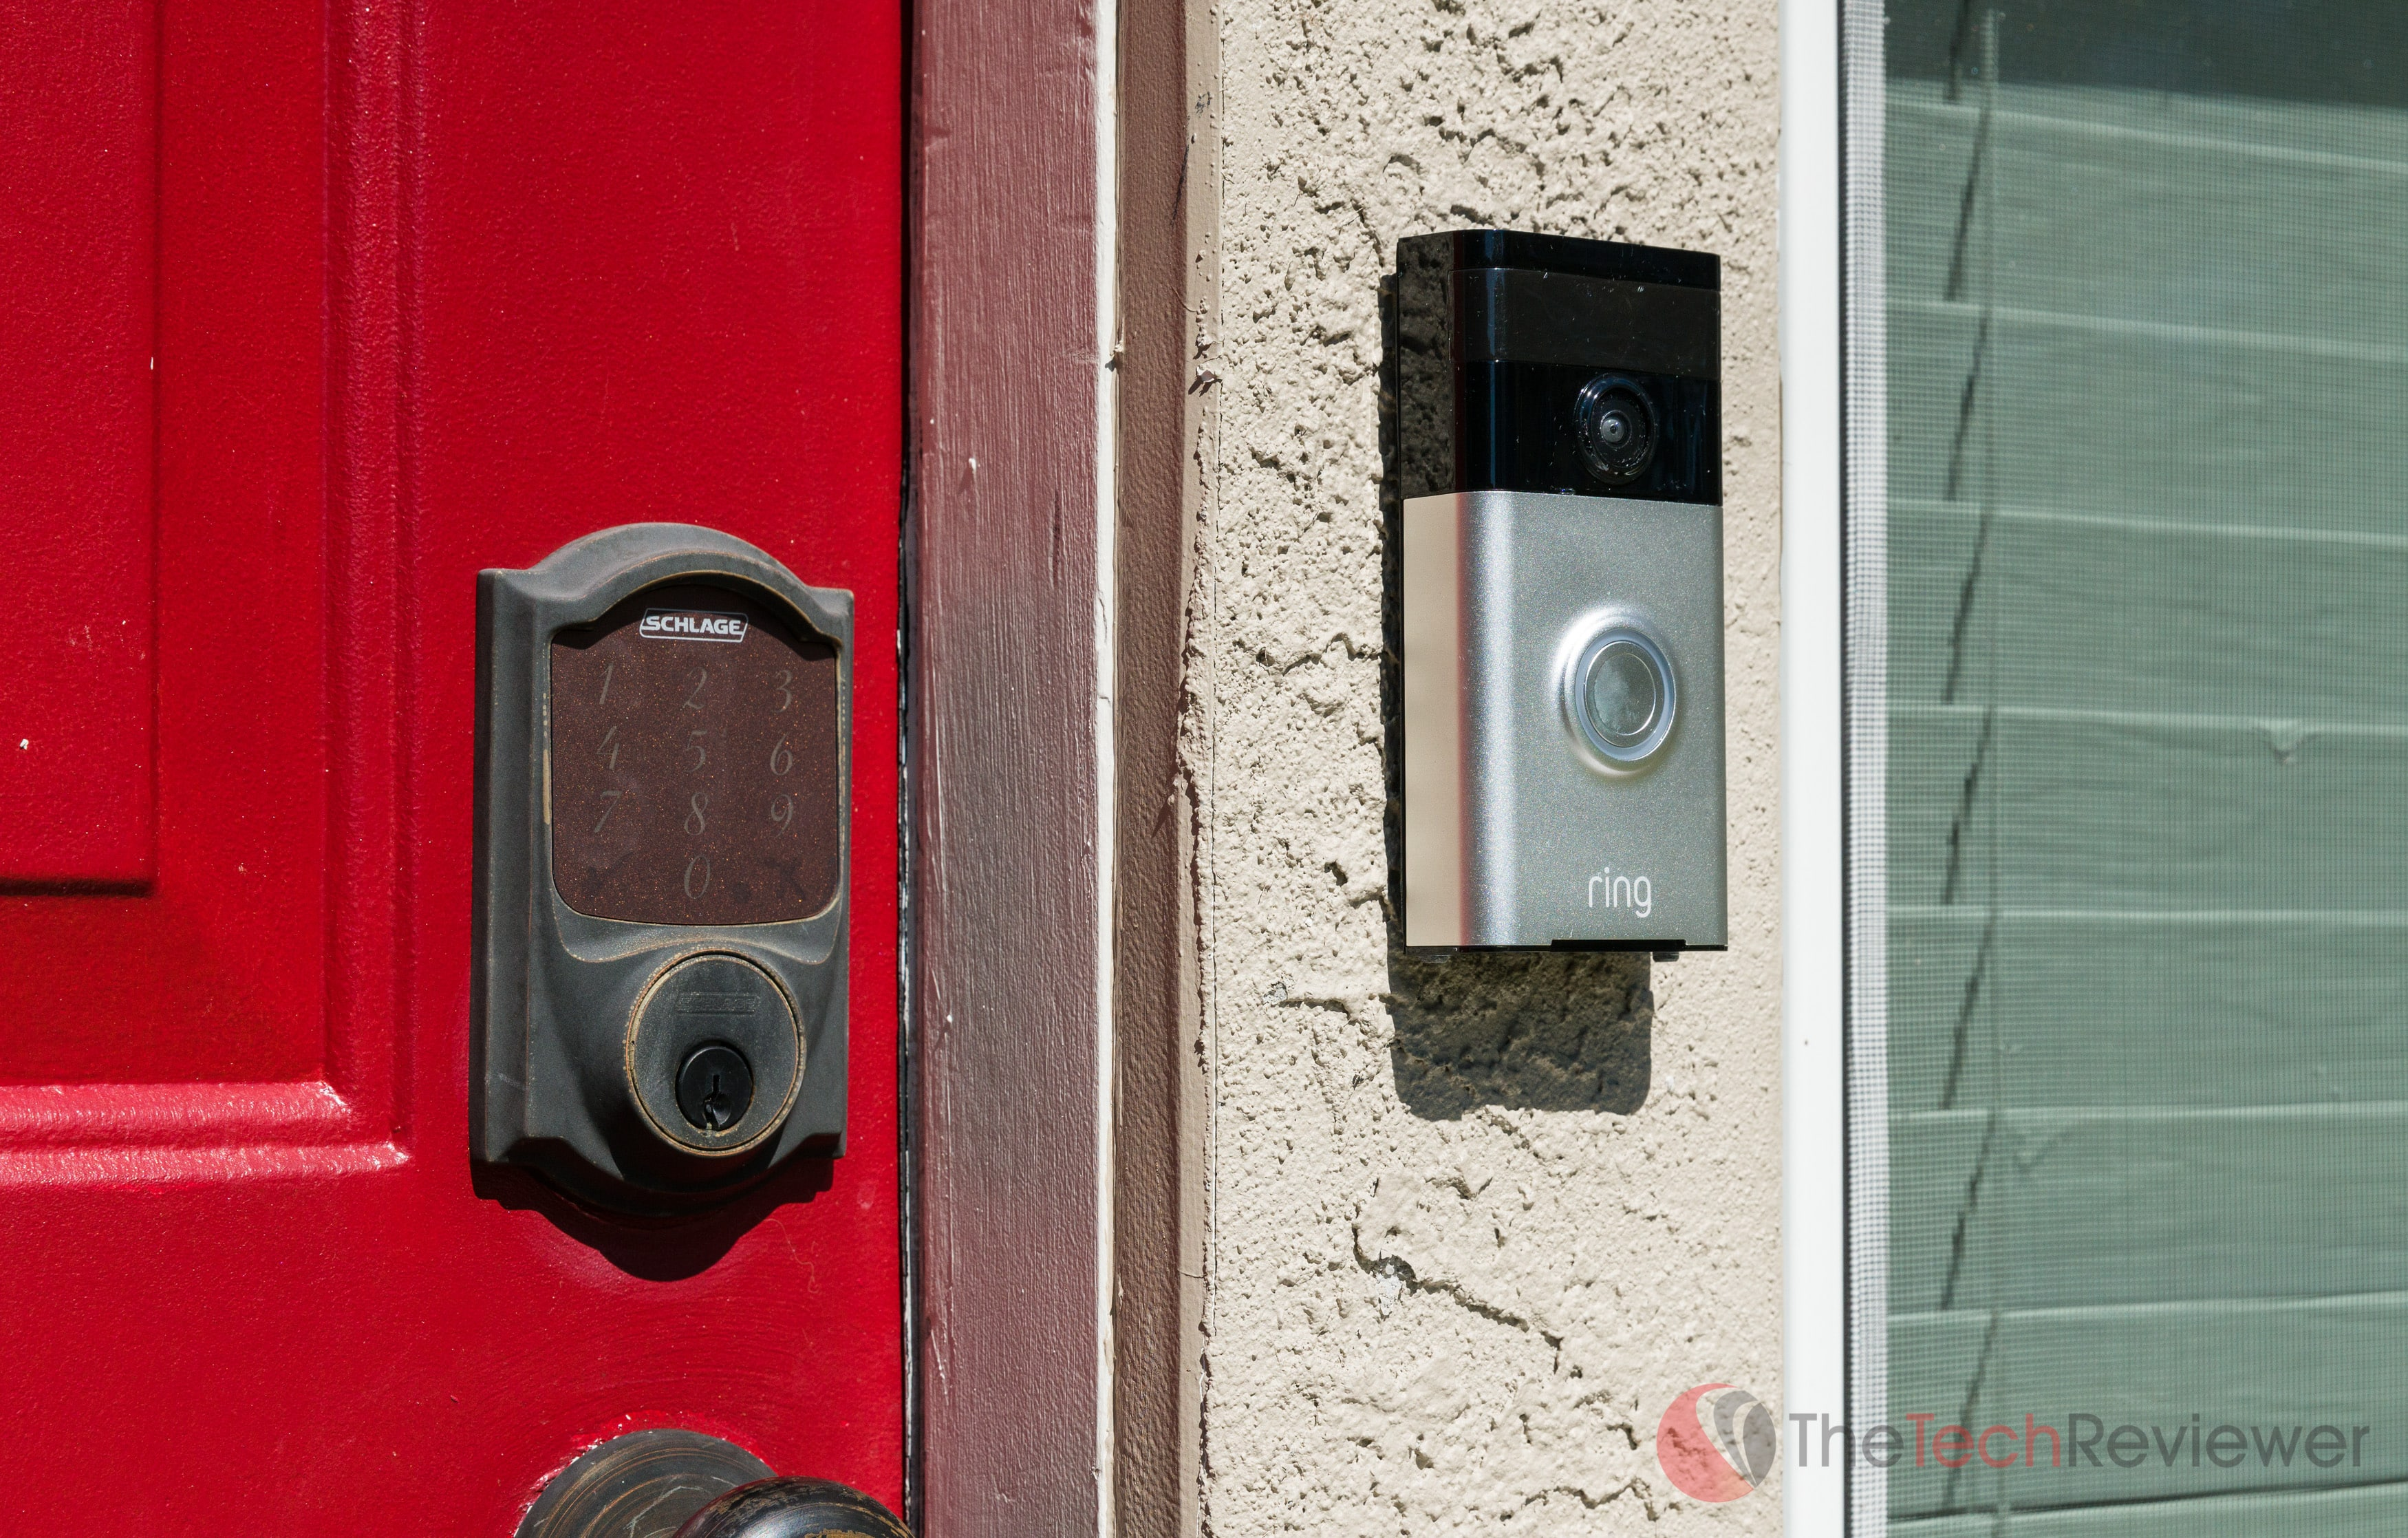 A Ring Video Doorbell (first generation) mounted on my home in St. Petersburg, Florida.